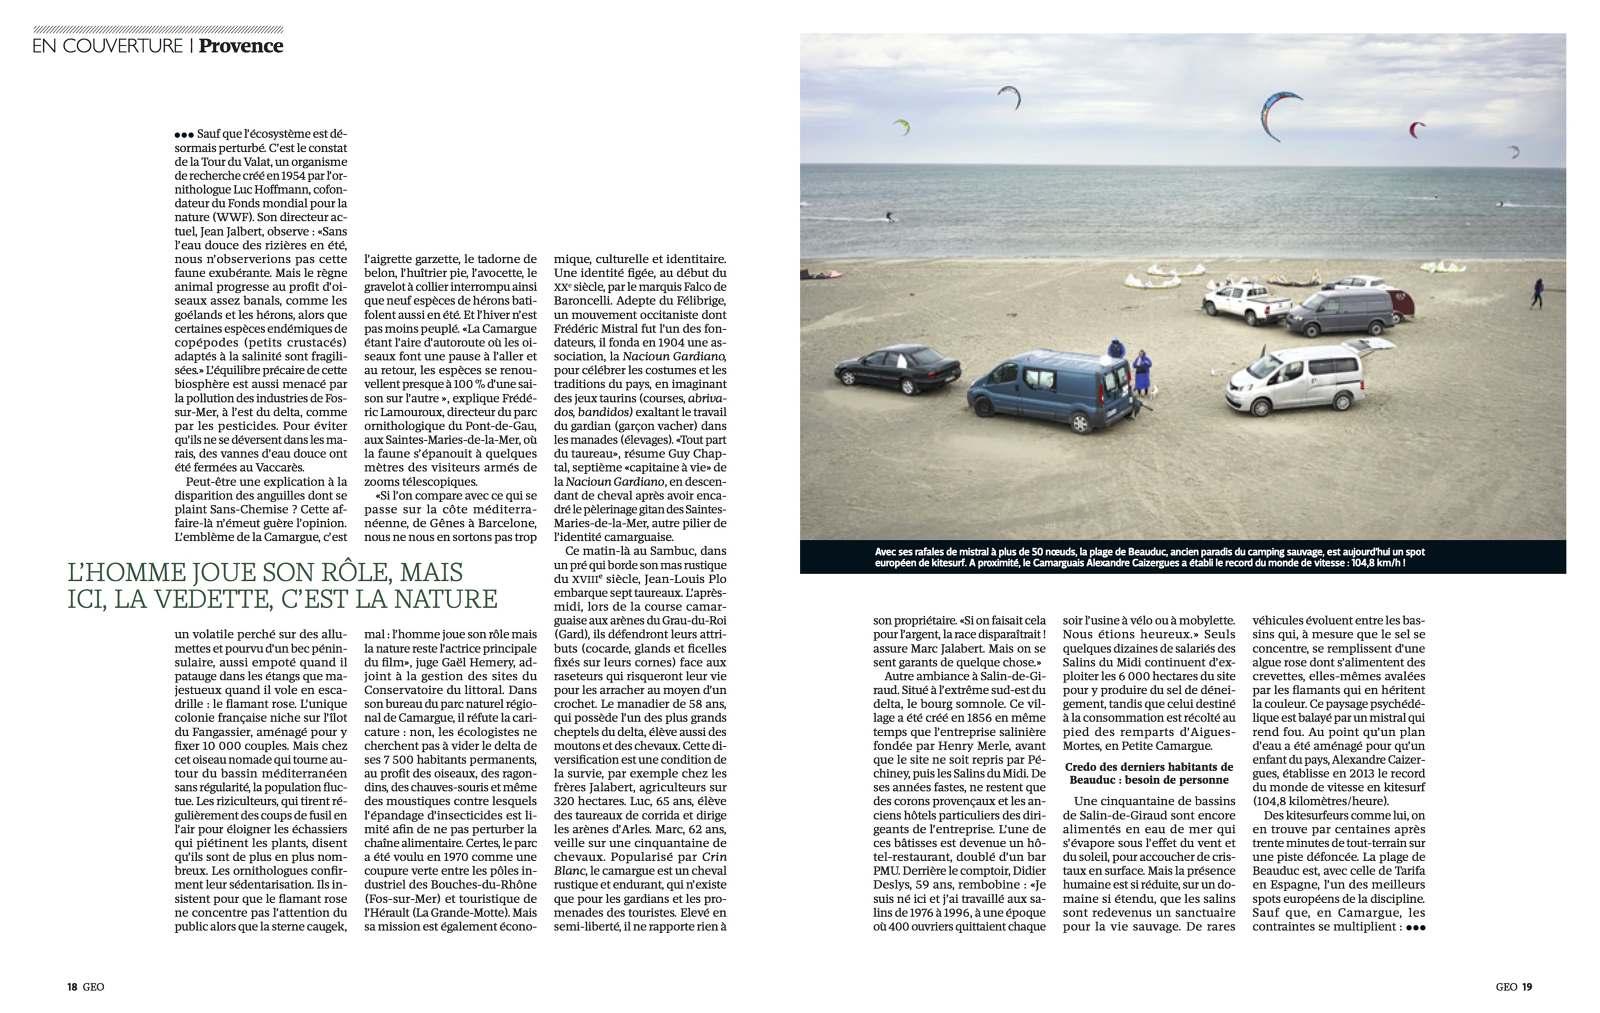 Tearsheet Geo Commission Riverboom To Photograph The Camargue